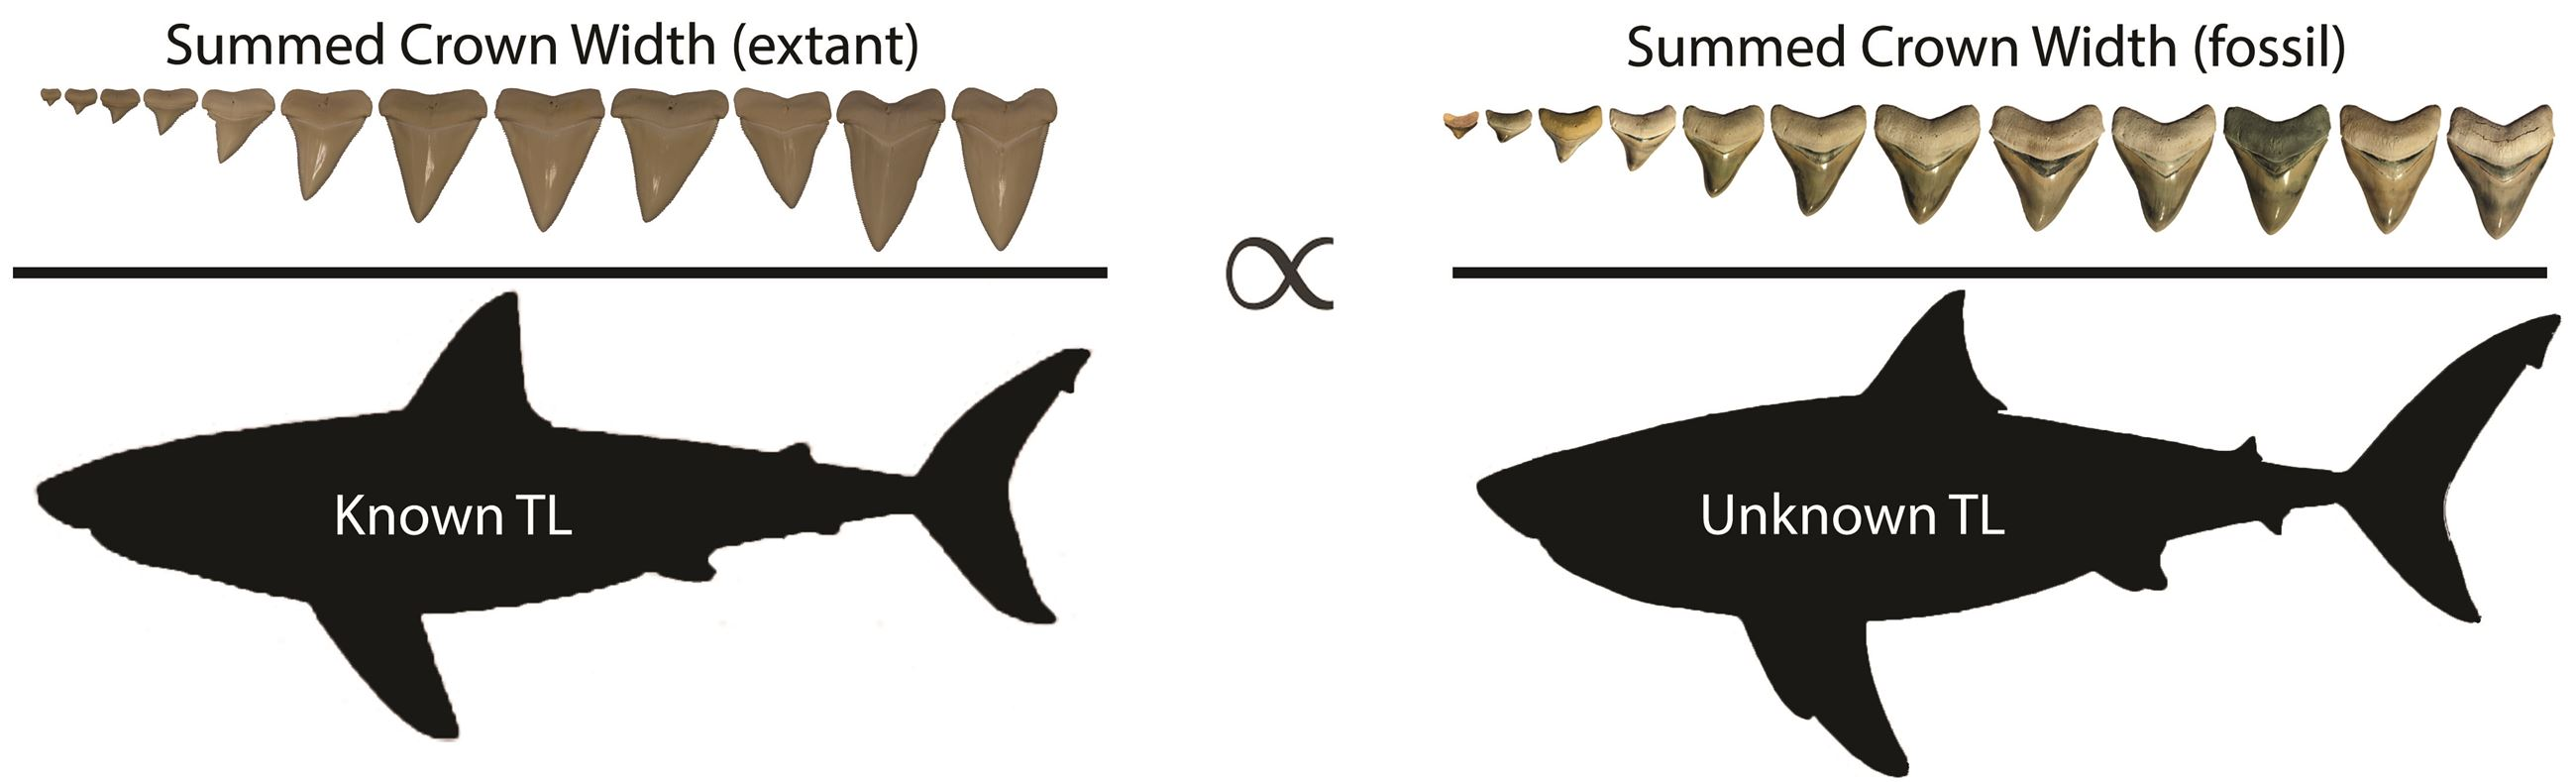 Maximum body length of Otodus megalodon, based on the largest known tooth. Note